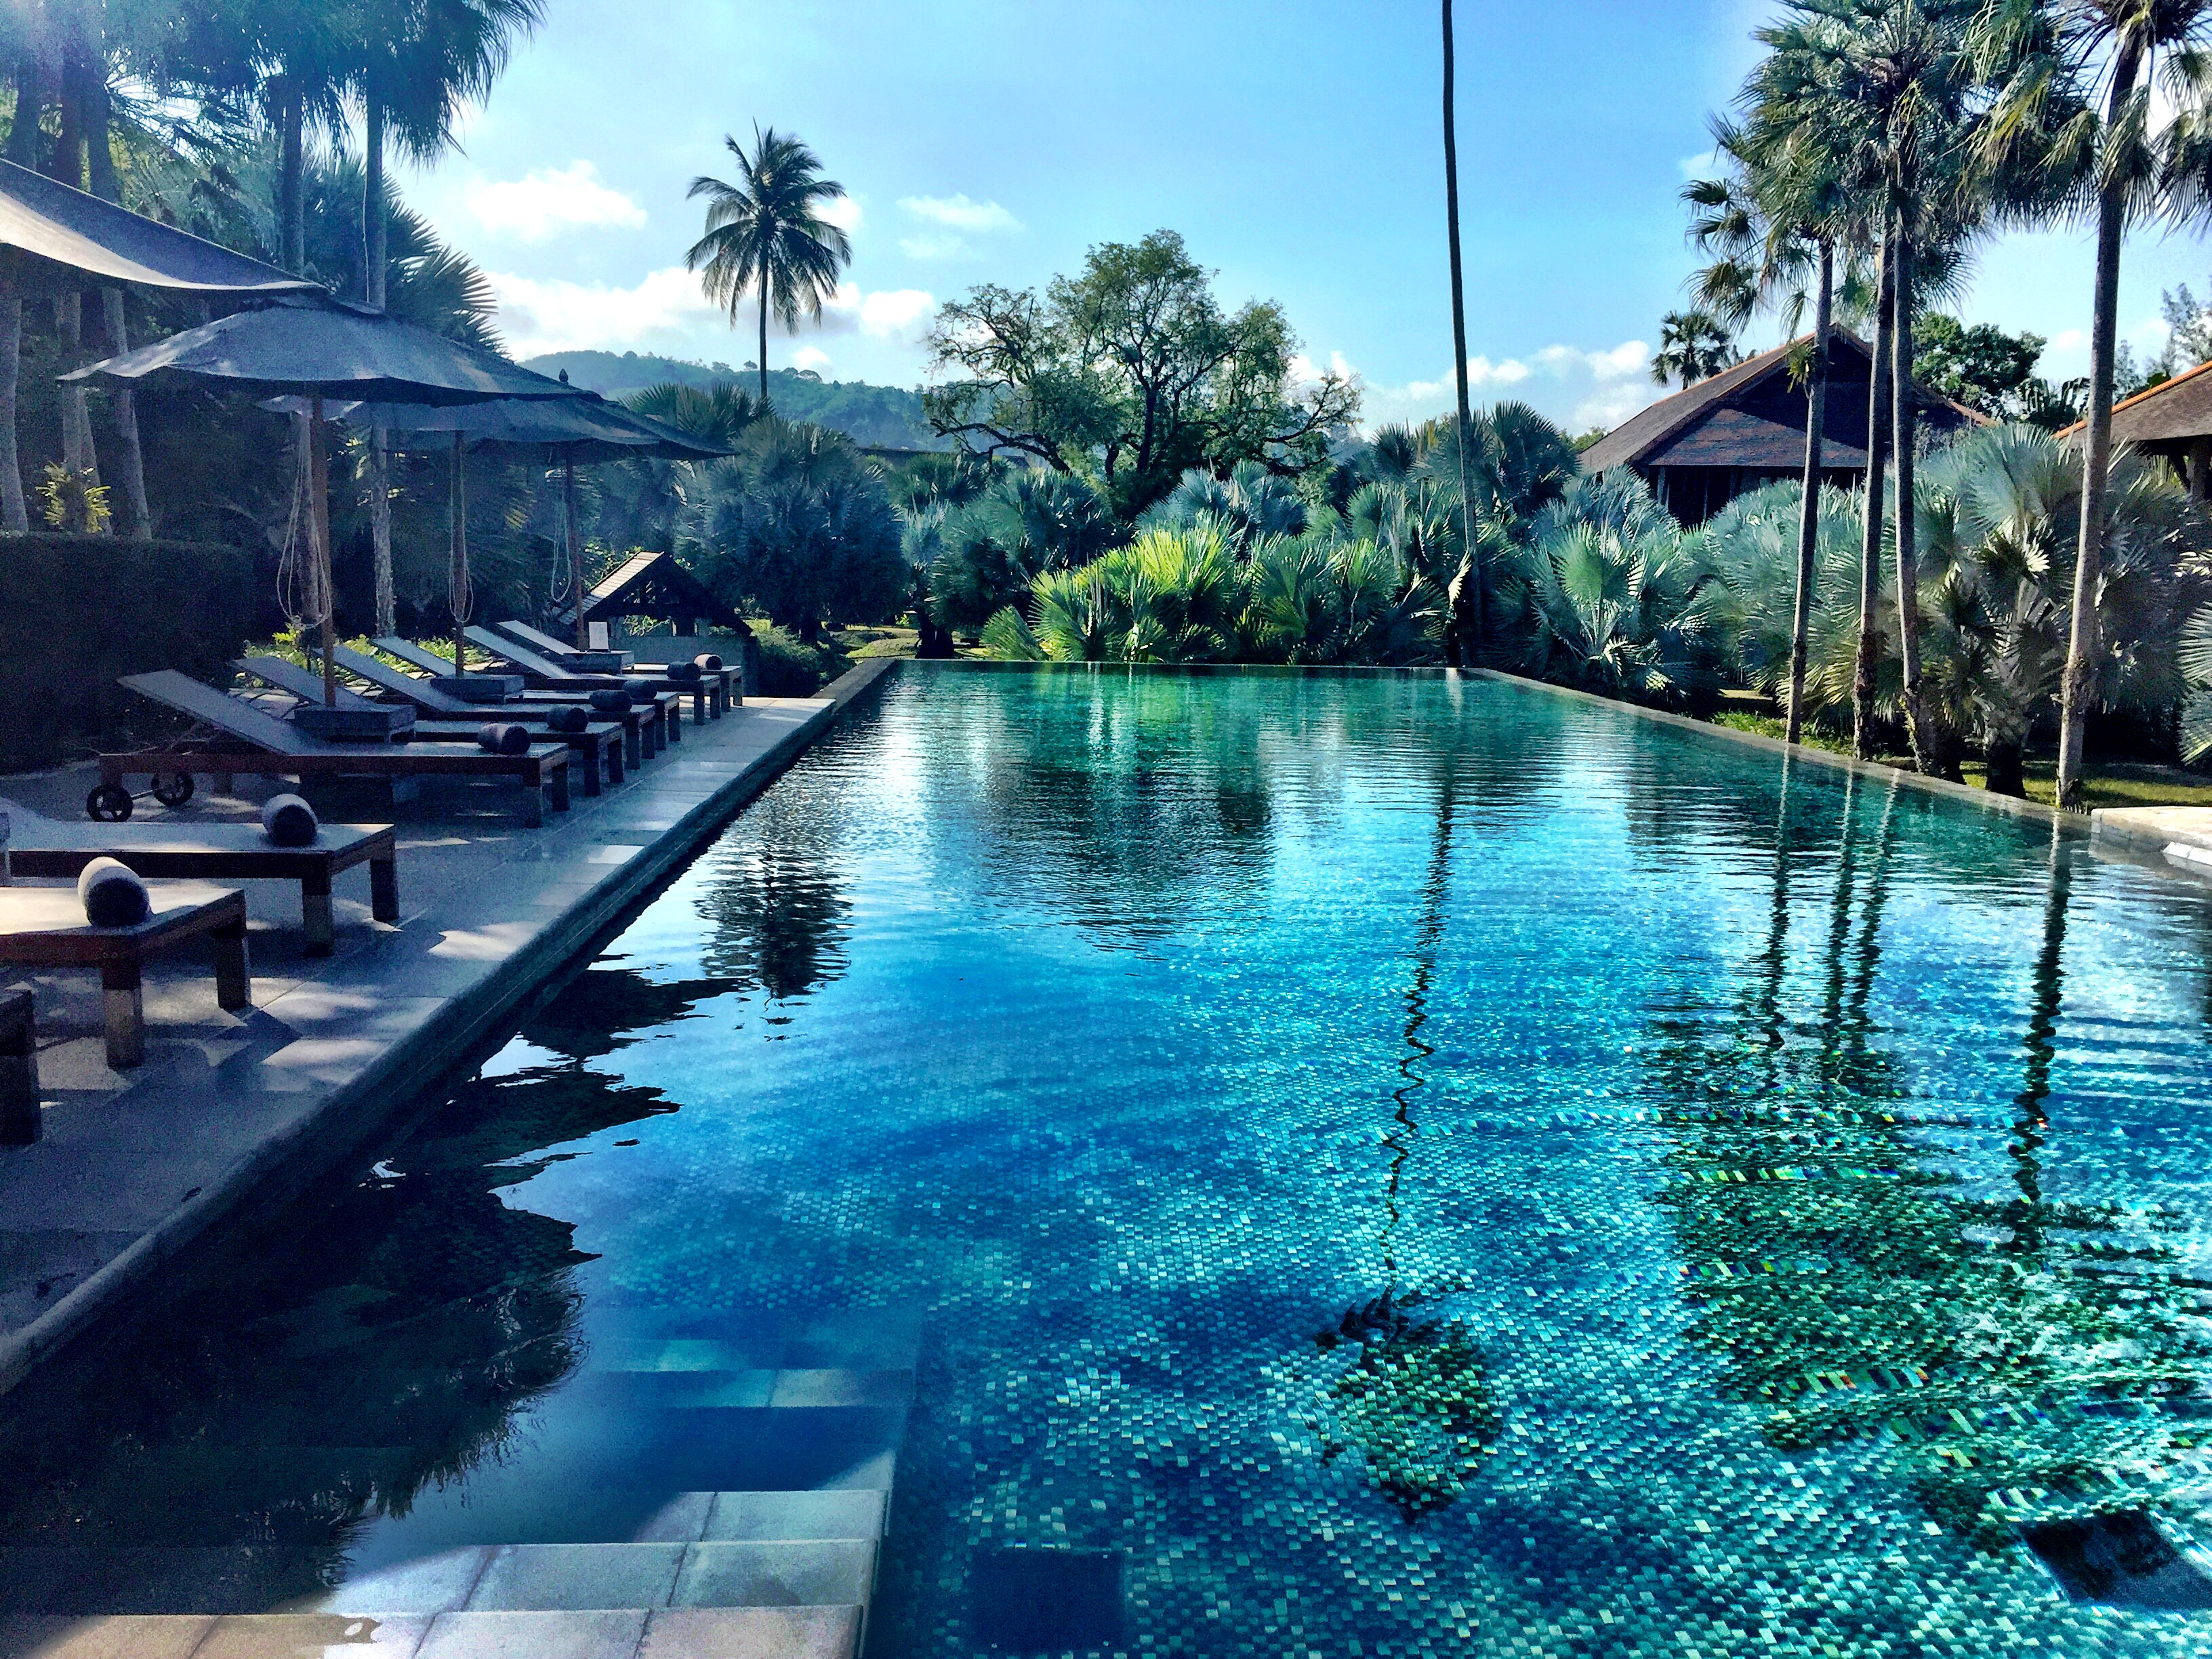 the slate resort is located in the northern part of phuket about 10 minutes from the airport its a beautiful boutique hotel thats a perfect place if you